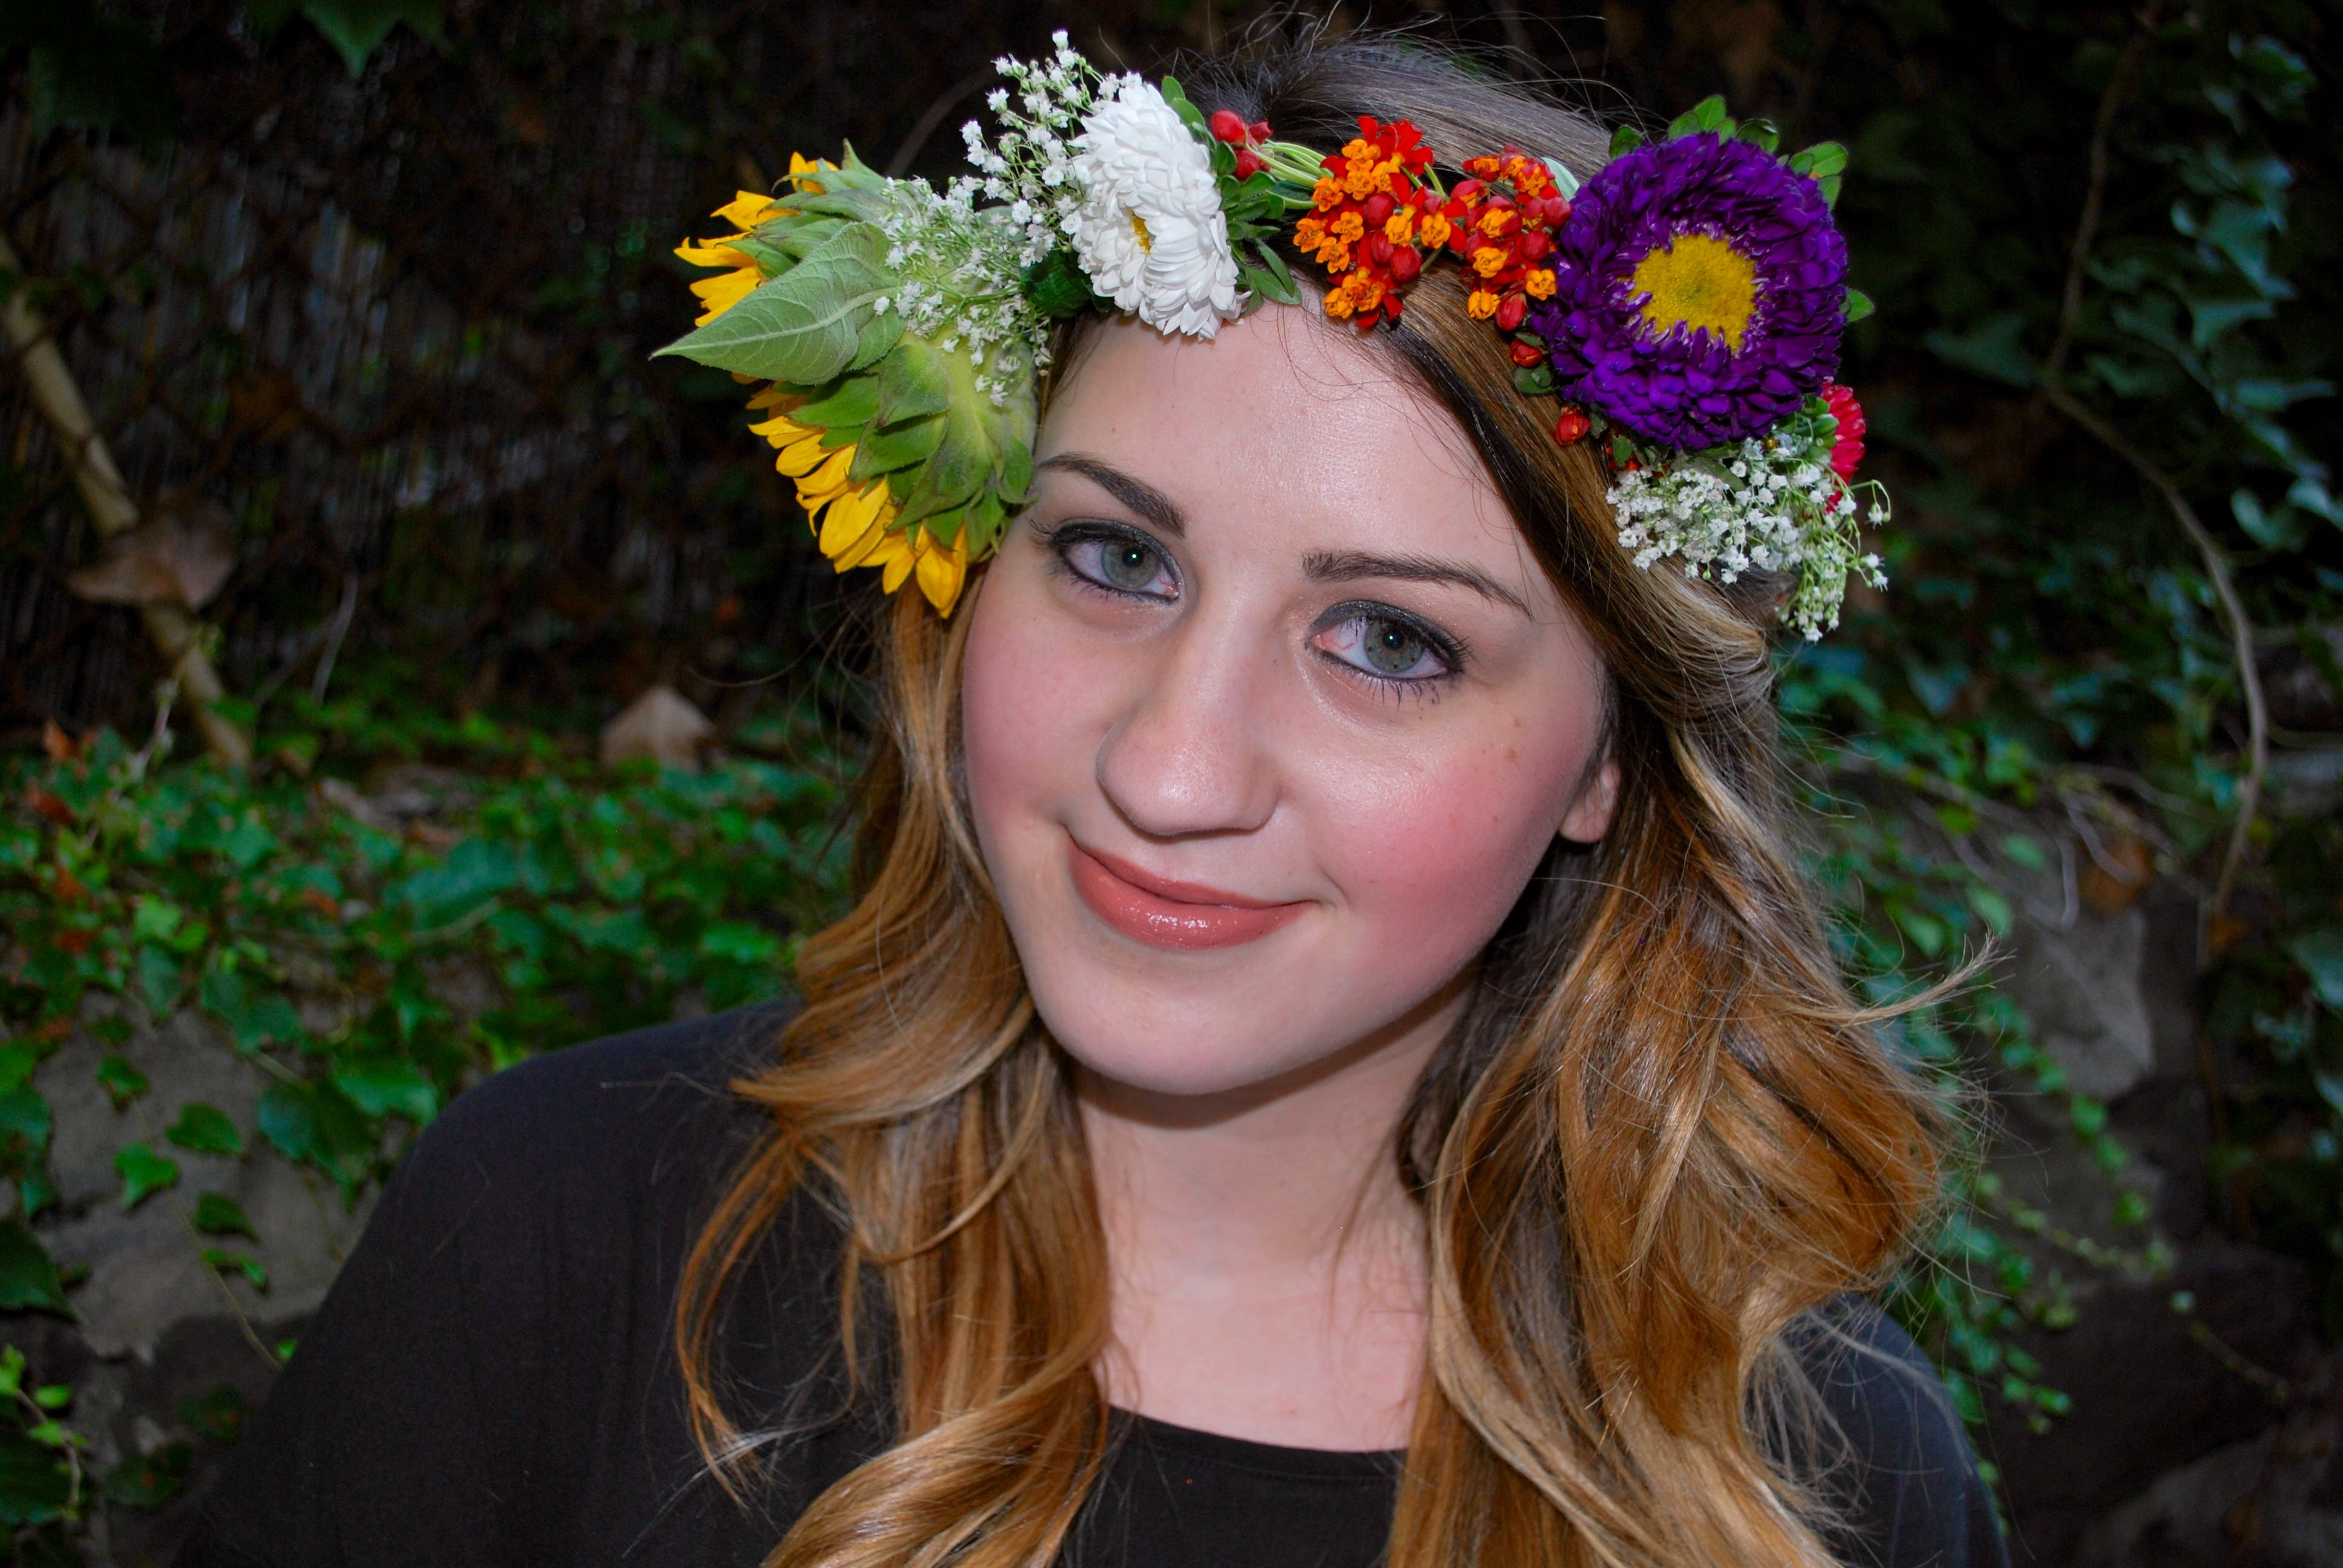 Diy flower crowns as told by ash and shelbs flower crowns izmirmasajfo